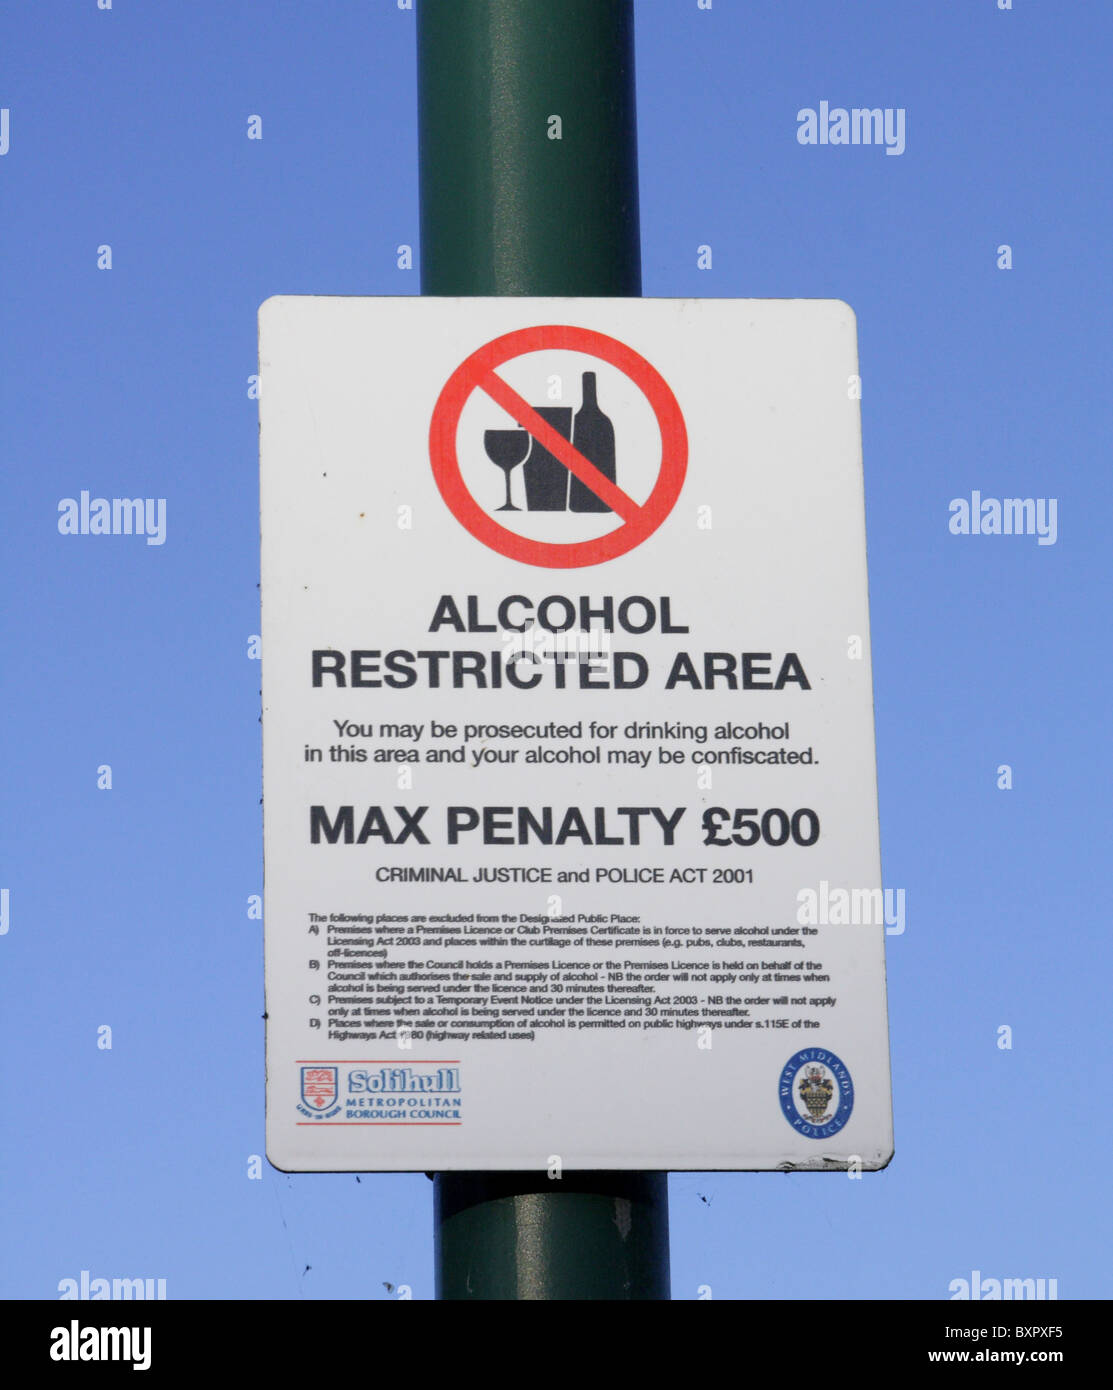 Alcohol restricted area  - UK - Stock Image